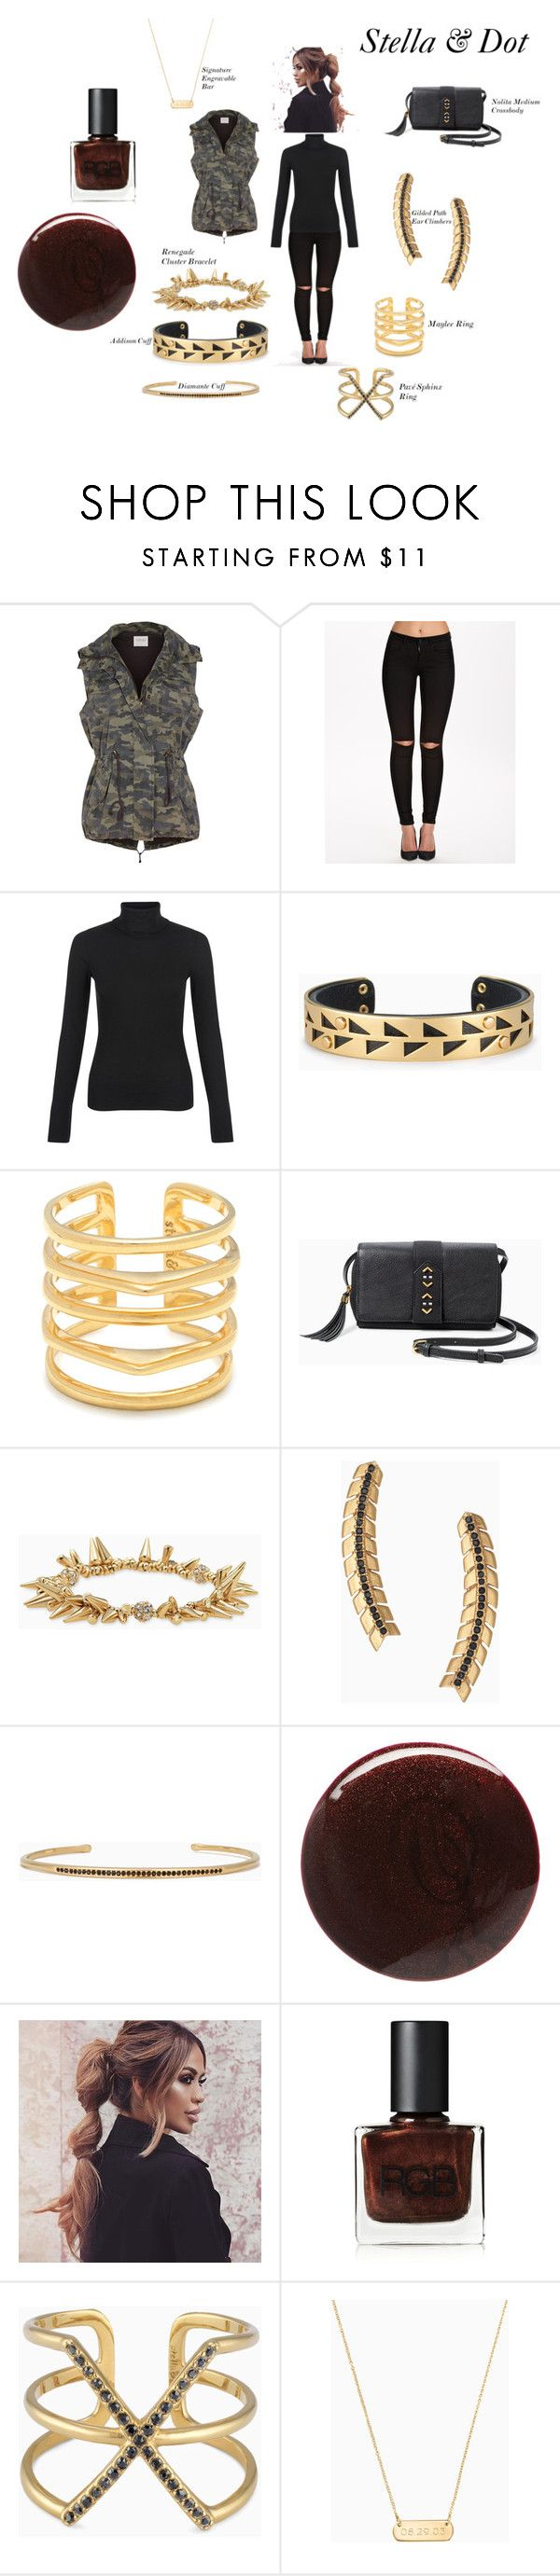 """Styled By Stella"" by flourish-faith on Polyvore featuring Velvet by Graham & Spencer, ONLY, New Look, Stella & Dot and RGB"